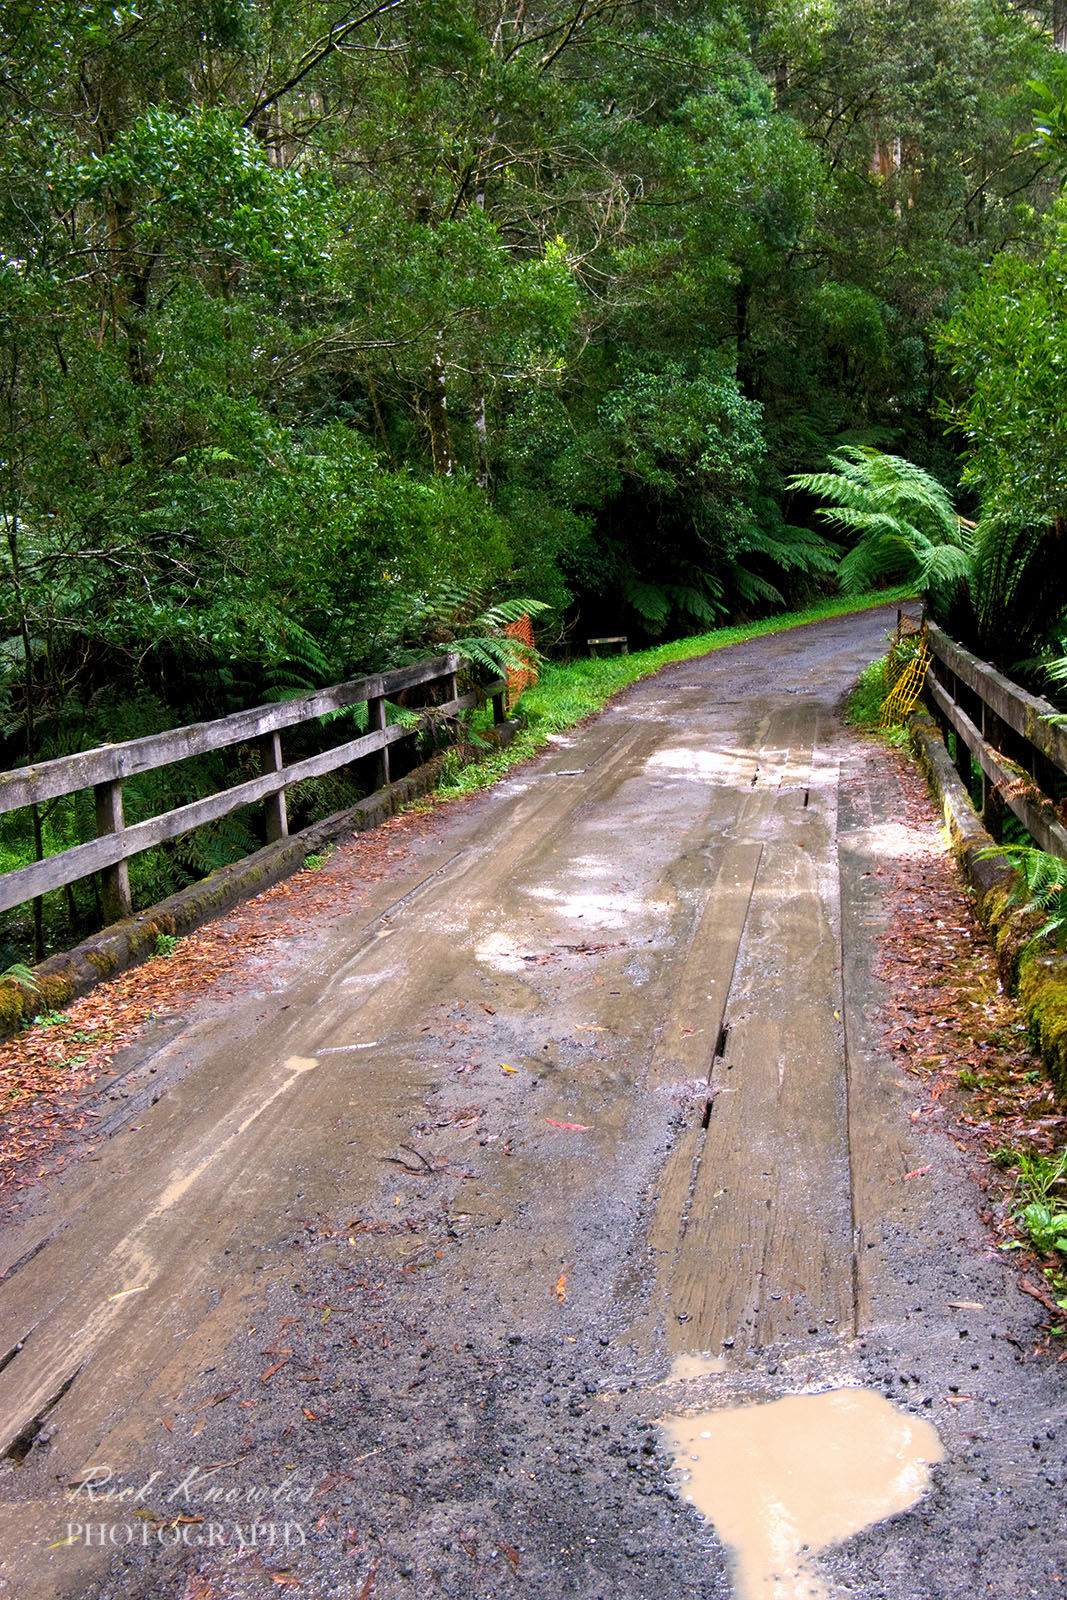 Rainforest Road, Otway National Park